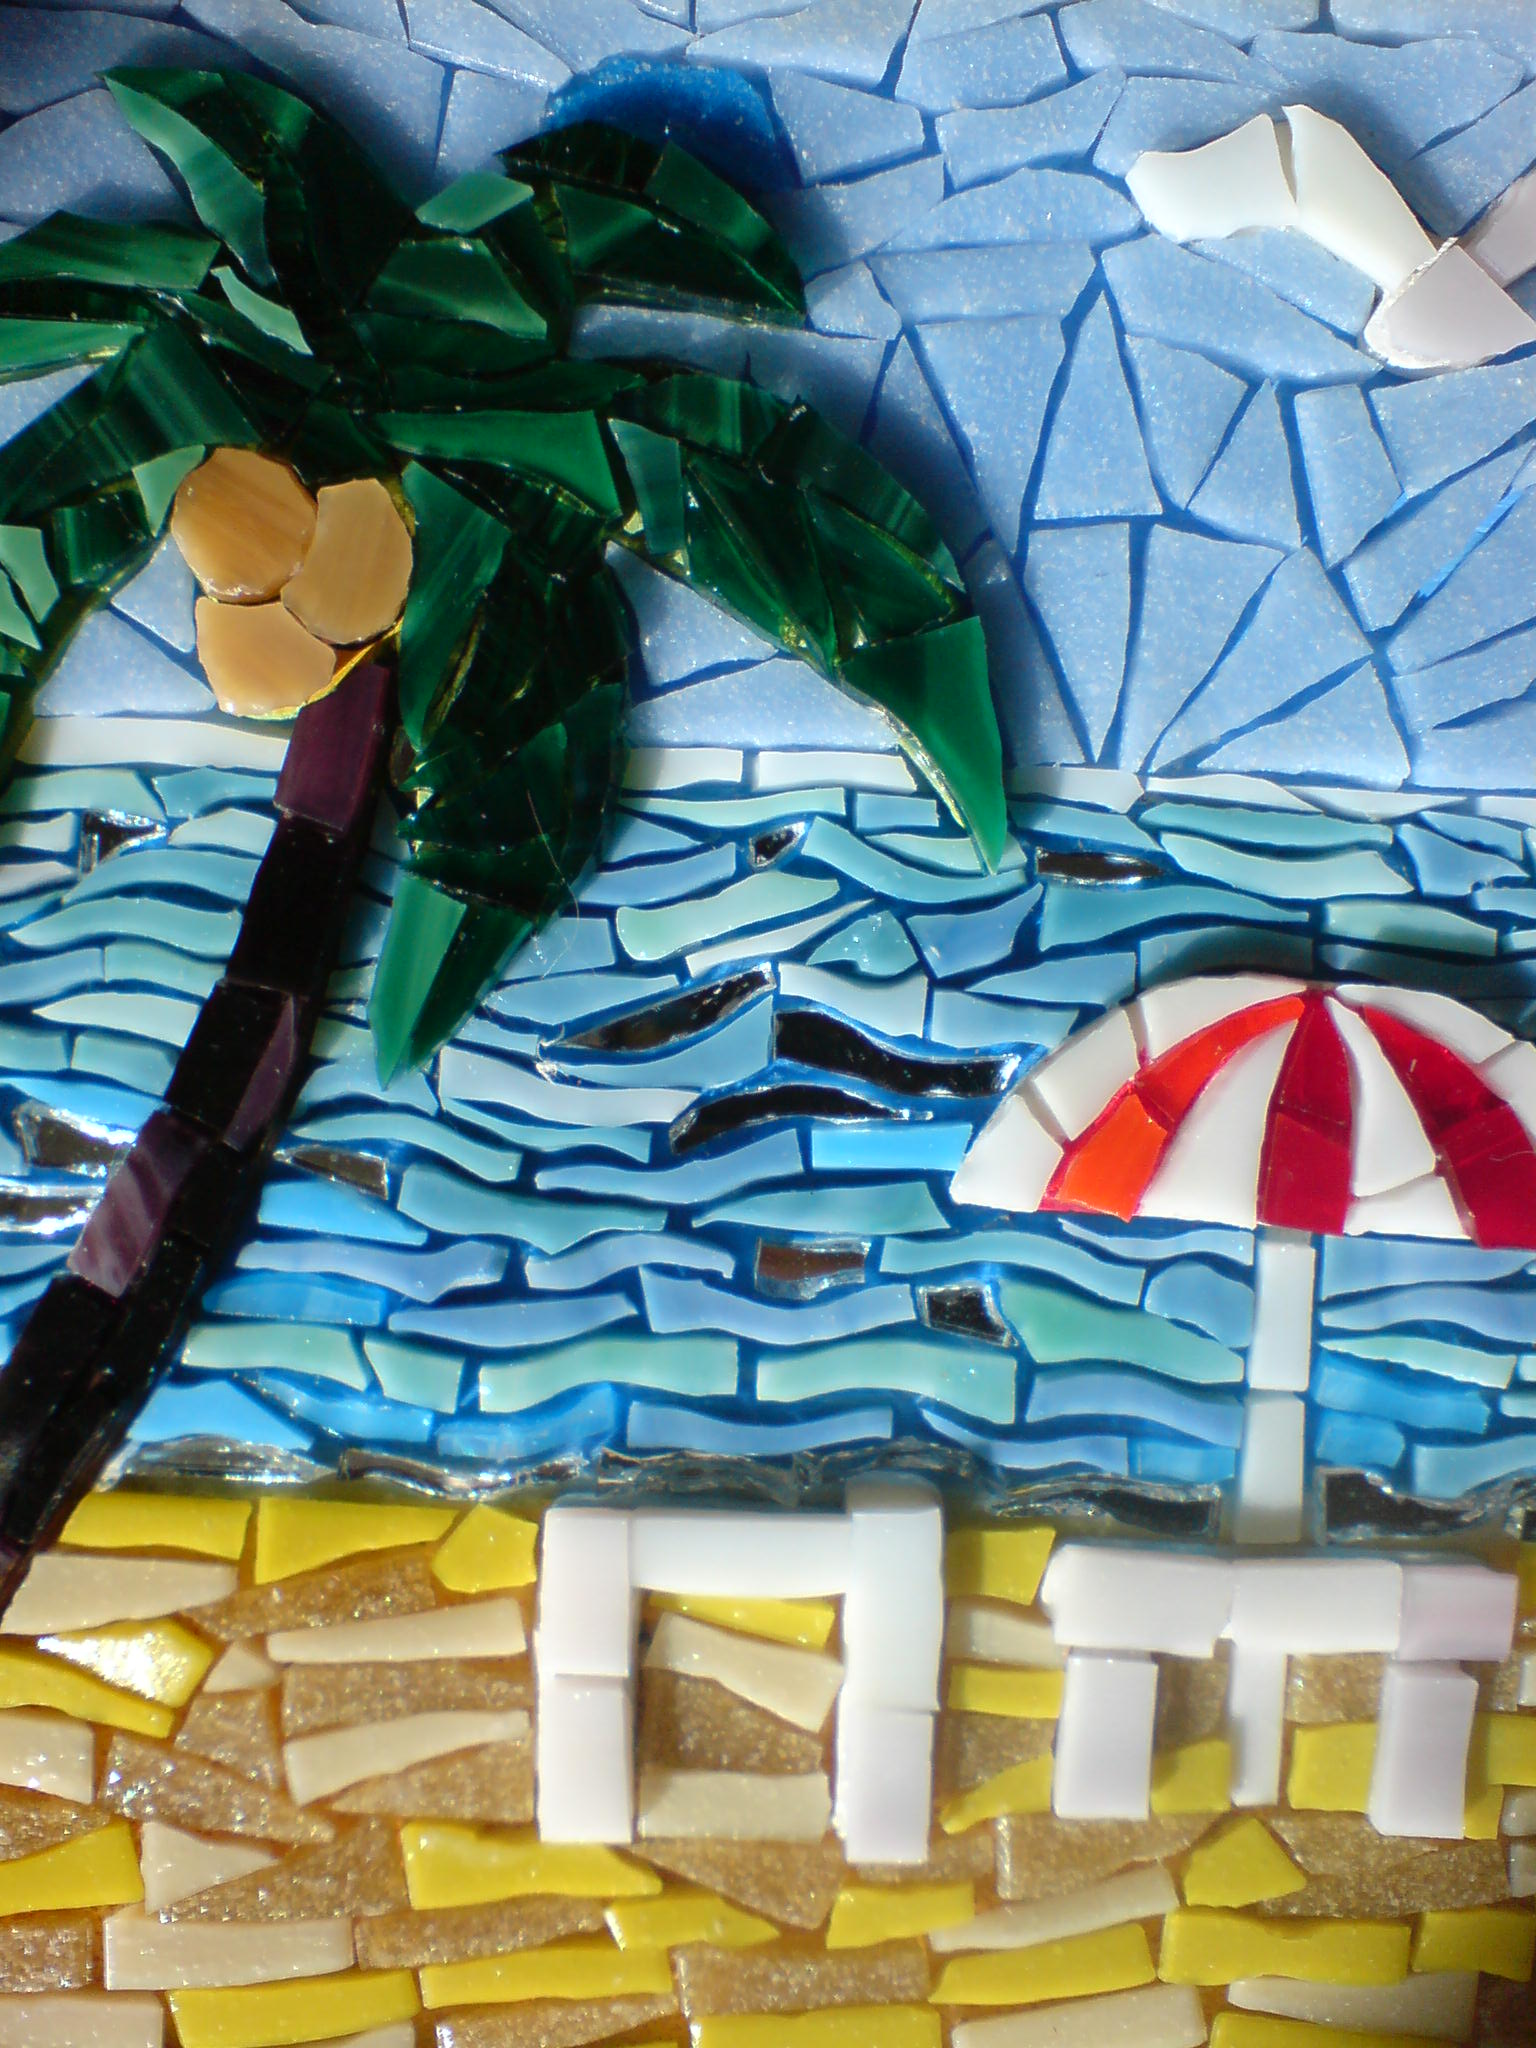 For Doctors without Borders, Gisela Gibbon Mosaic Artist Scarborough